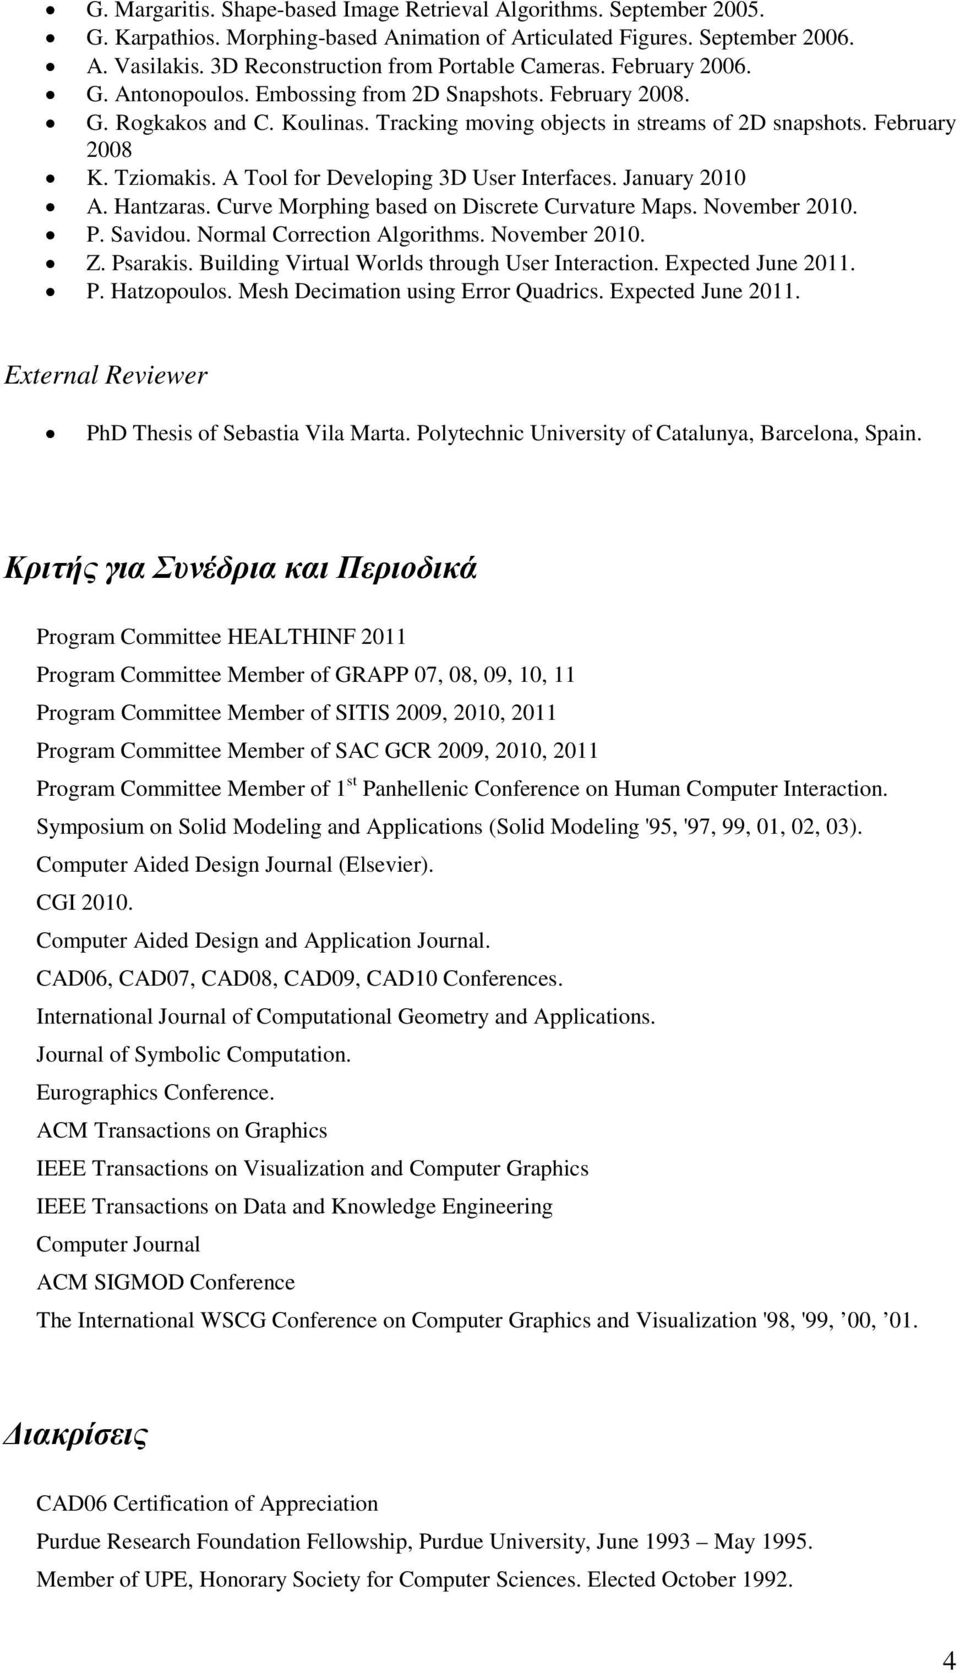 February 2008 K. Tziomakis. A Tool for Developing 3D User Interfaces. January 2010 A. Hantzaras. Curve Morphing based on Discrete Curvature Maps. November 2010. P. Savidou.